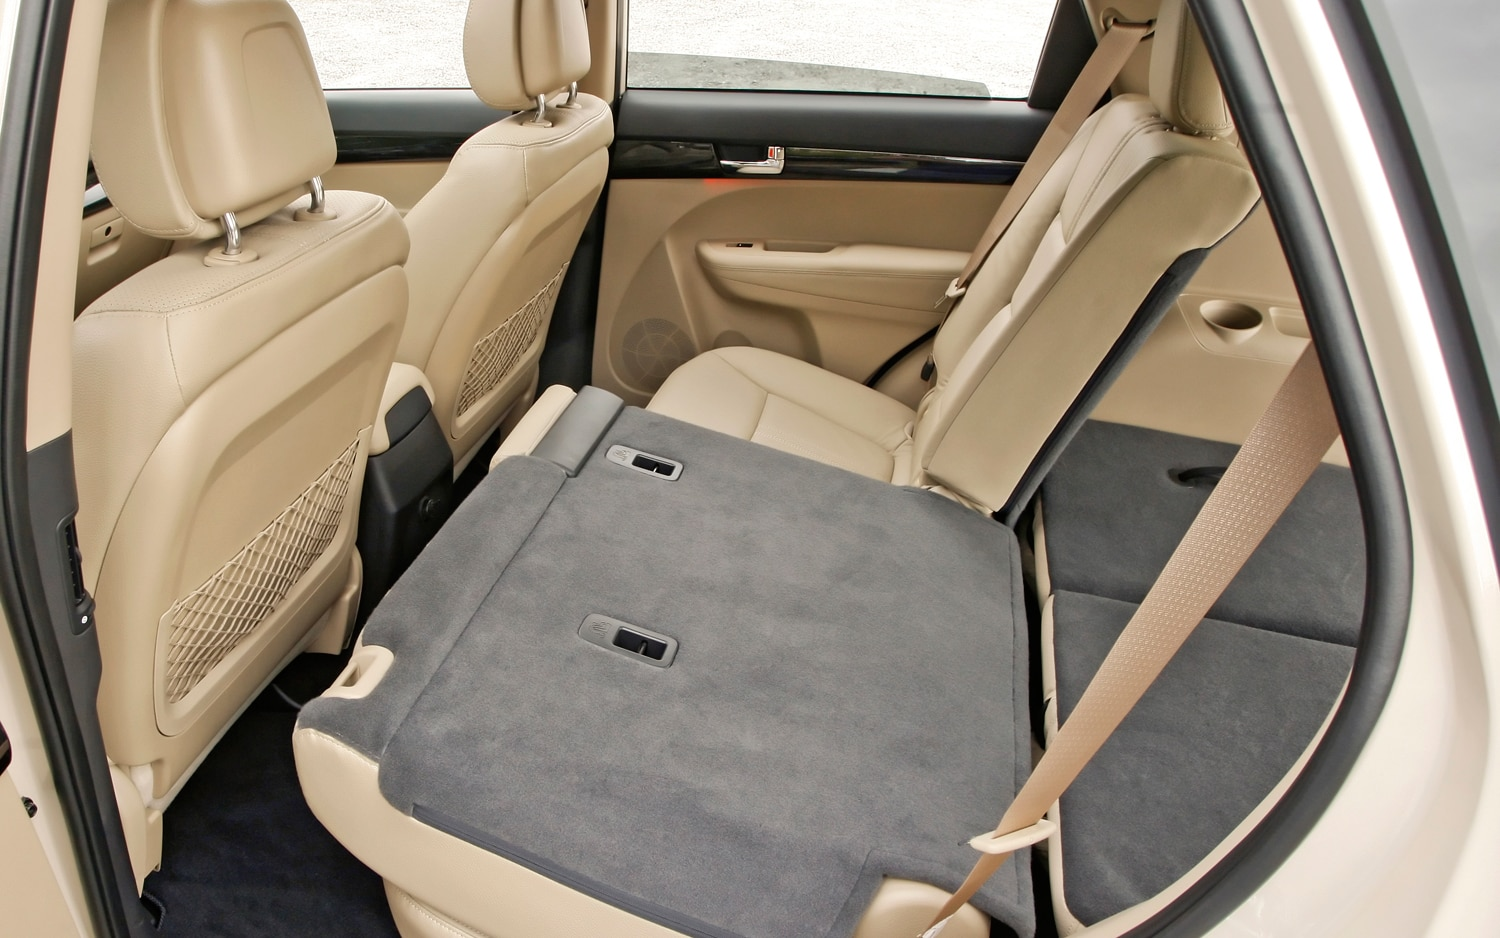 2012 Kia Sorento Rear Seats Folded